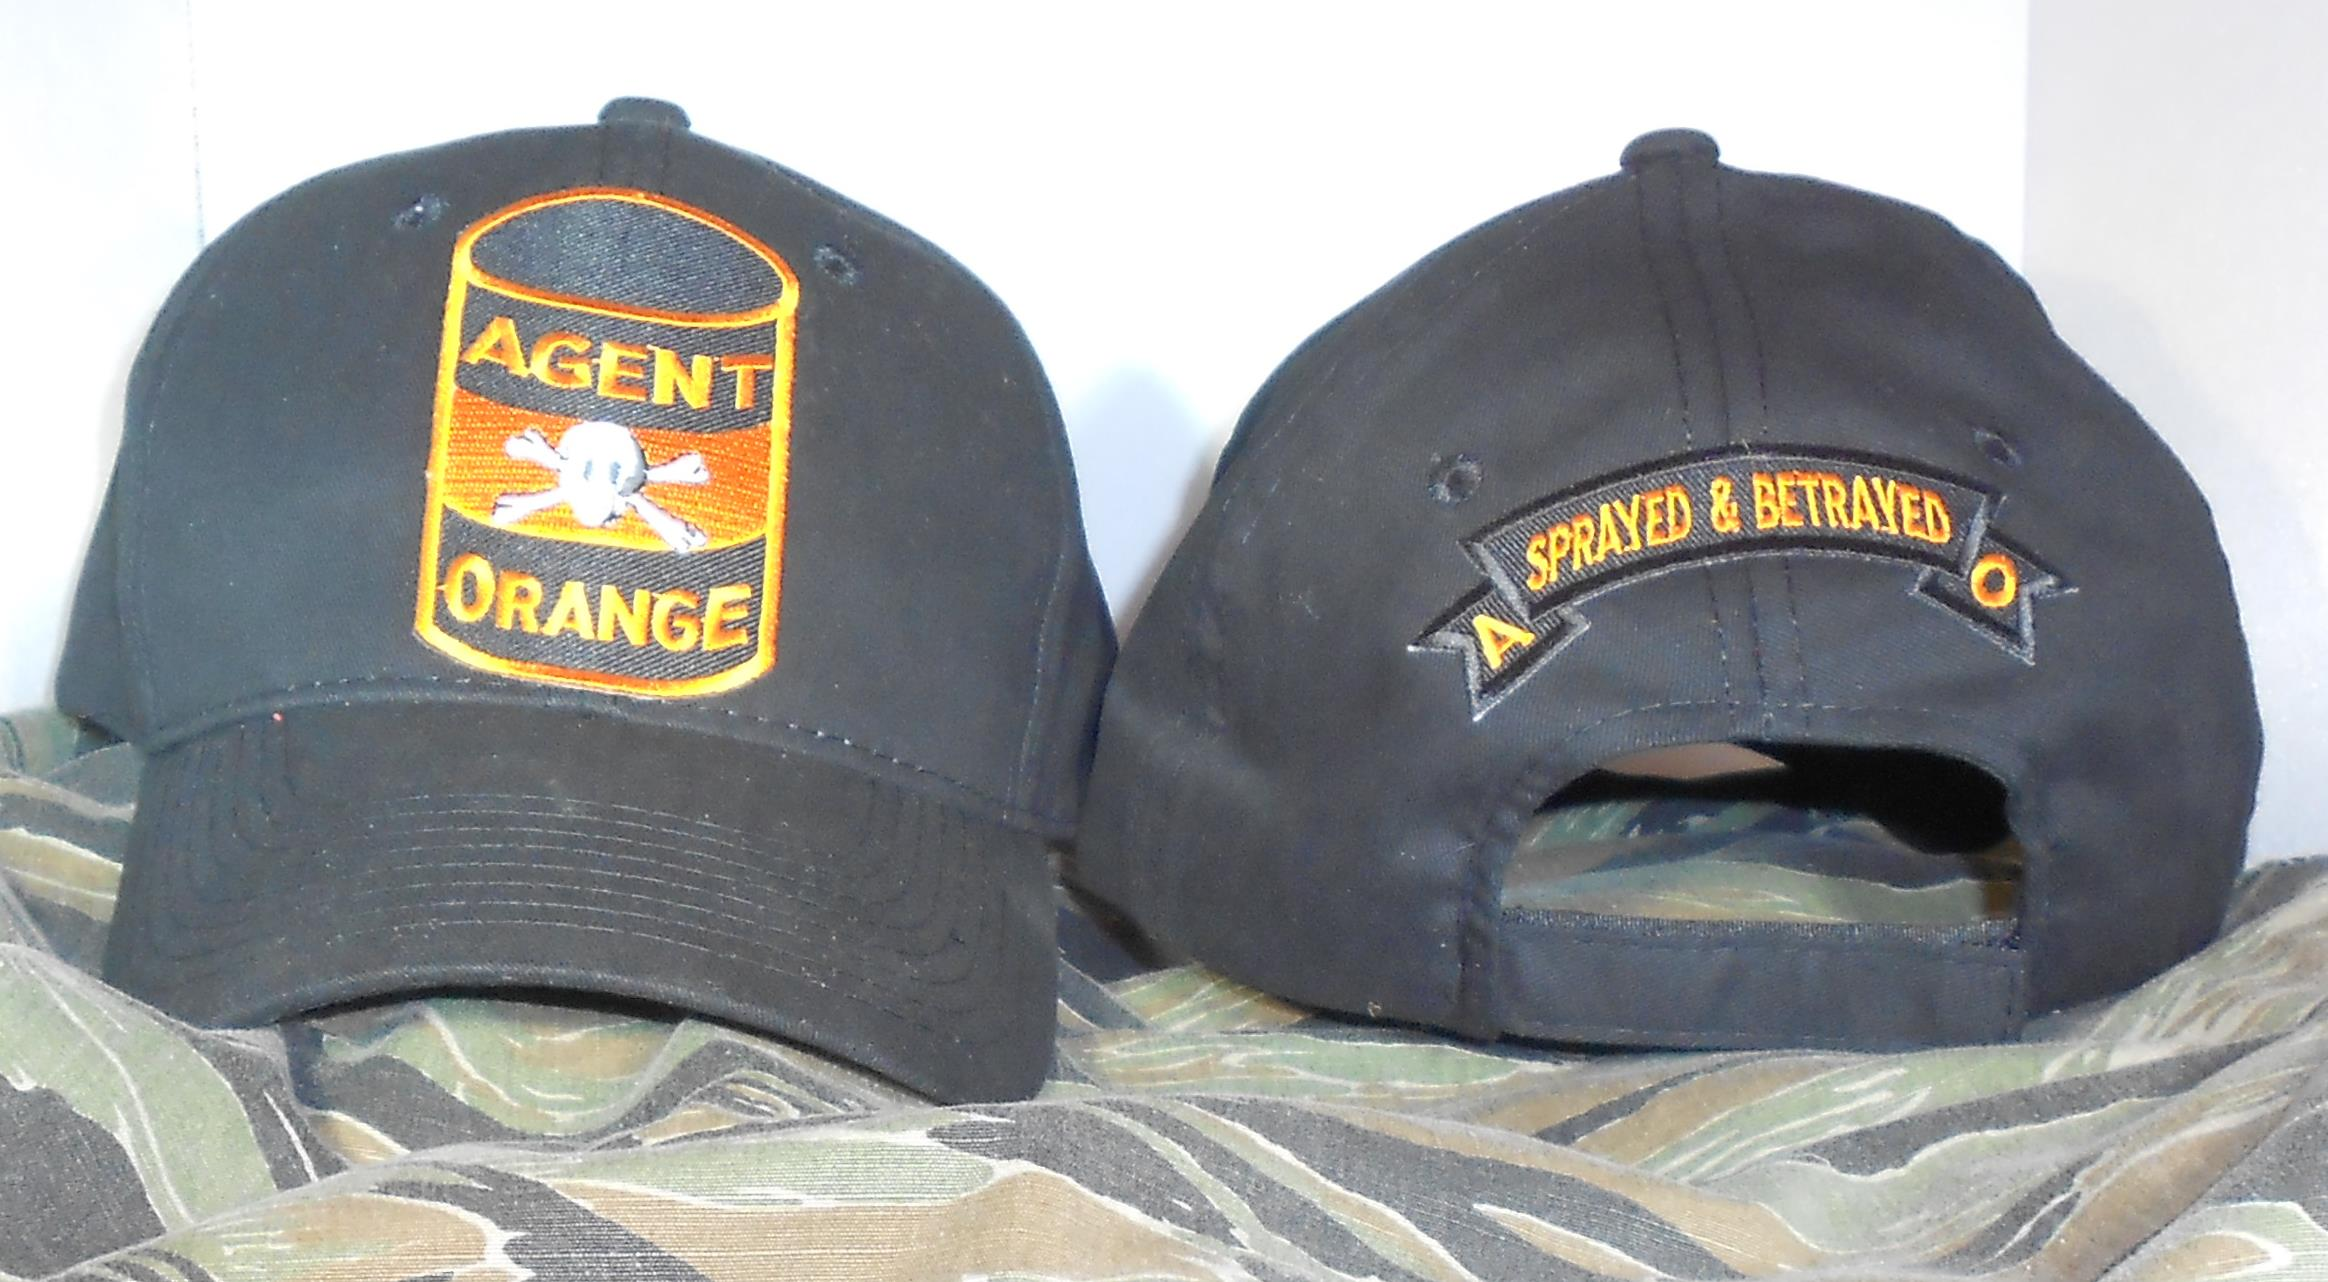 AGENT ORANGE 55 GALLON DRUM BLACK HATS